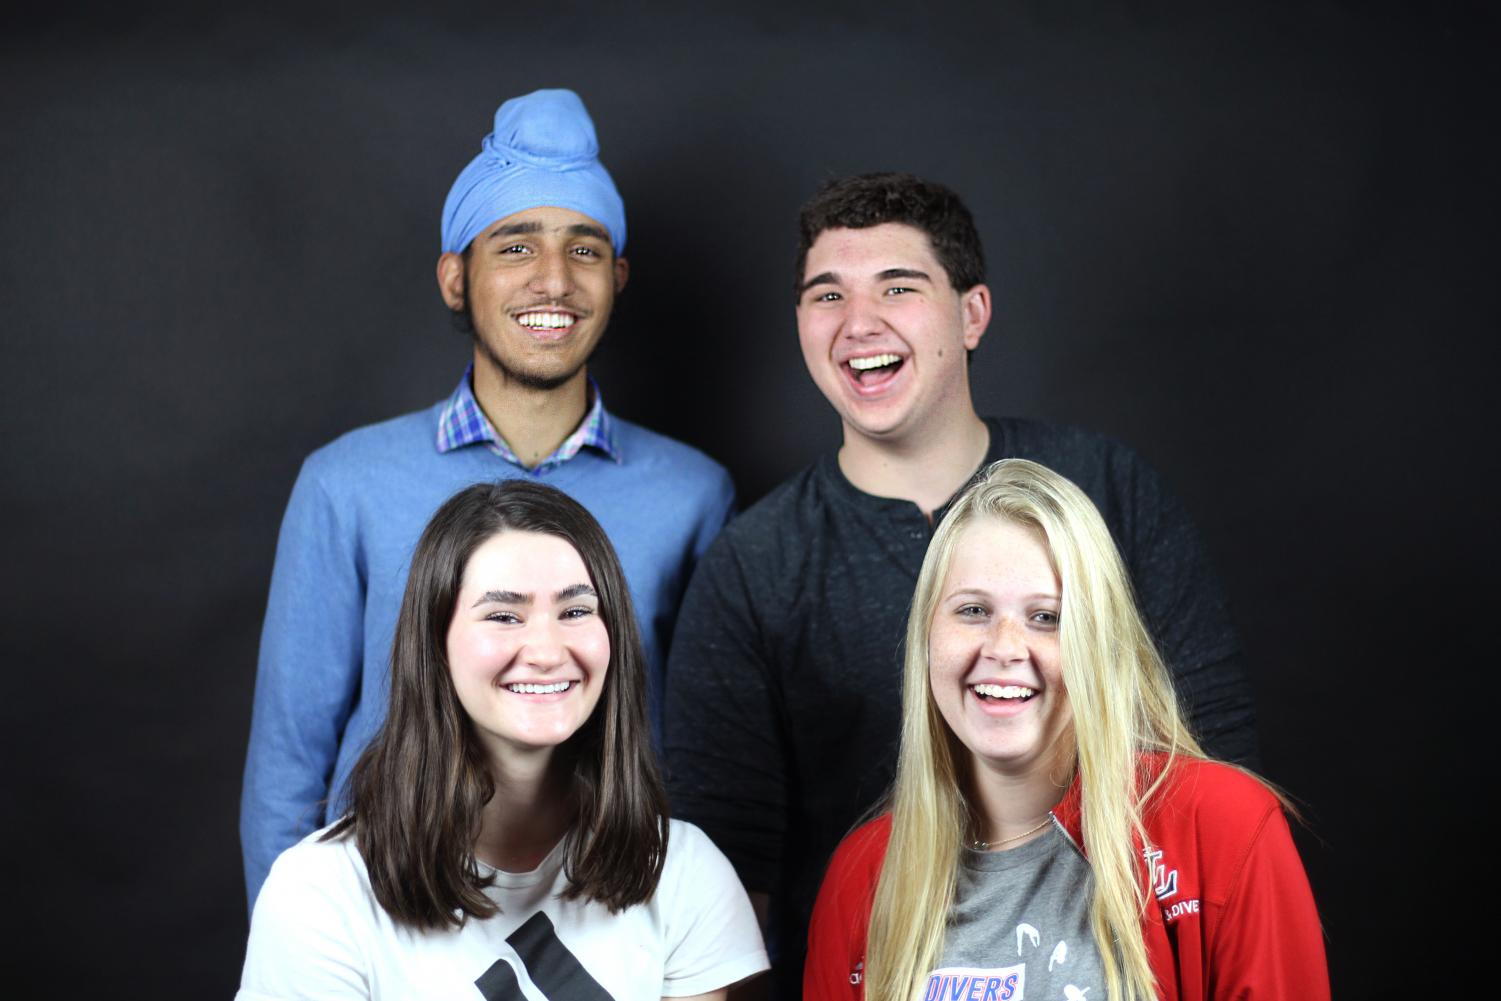 By taking part in this council, juniors Tajvir Singh, Chase Stevens, Allie Johnson and Sierra Rodriguez (from left) will discuss public policy, give insight to the youths opinion on current events, interact with federal representatives and learn leadership skills.